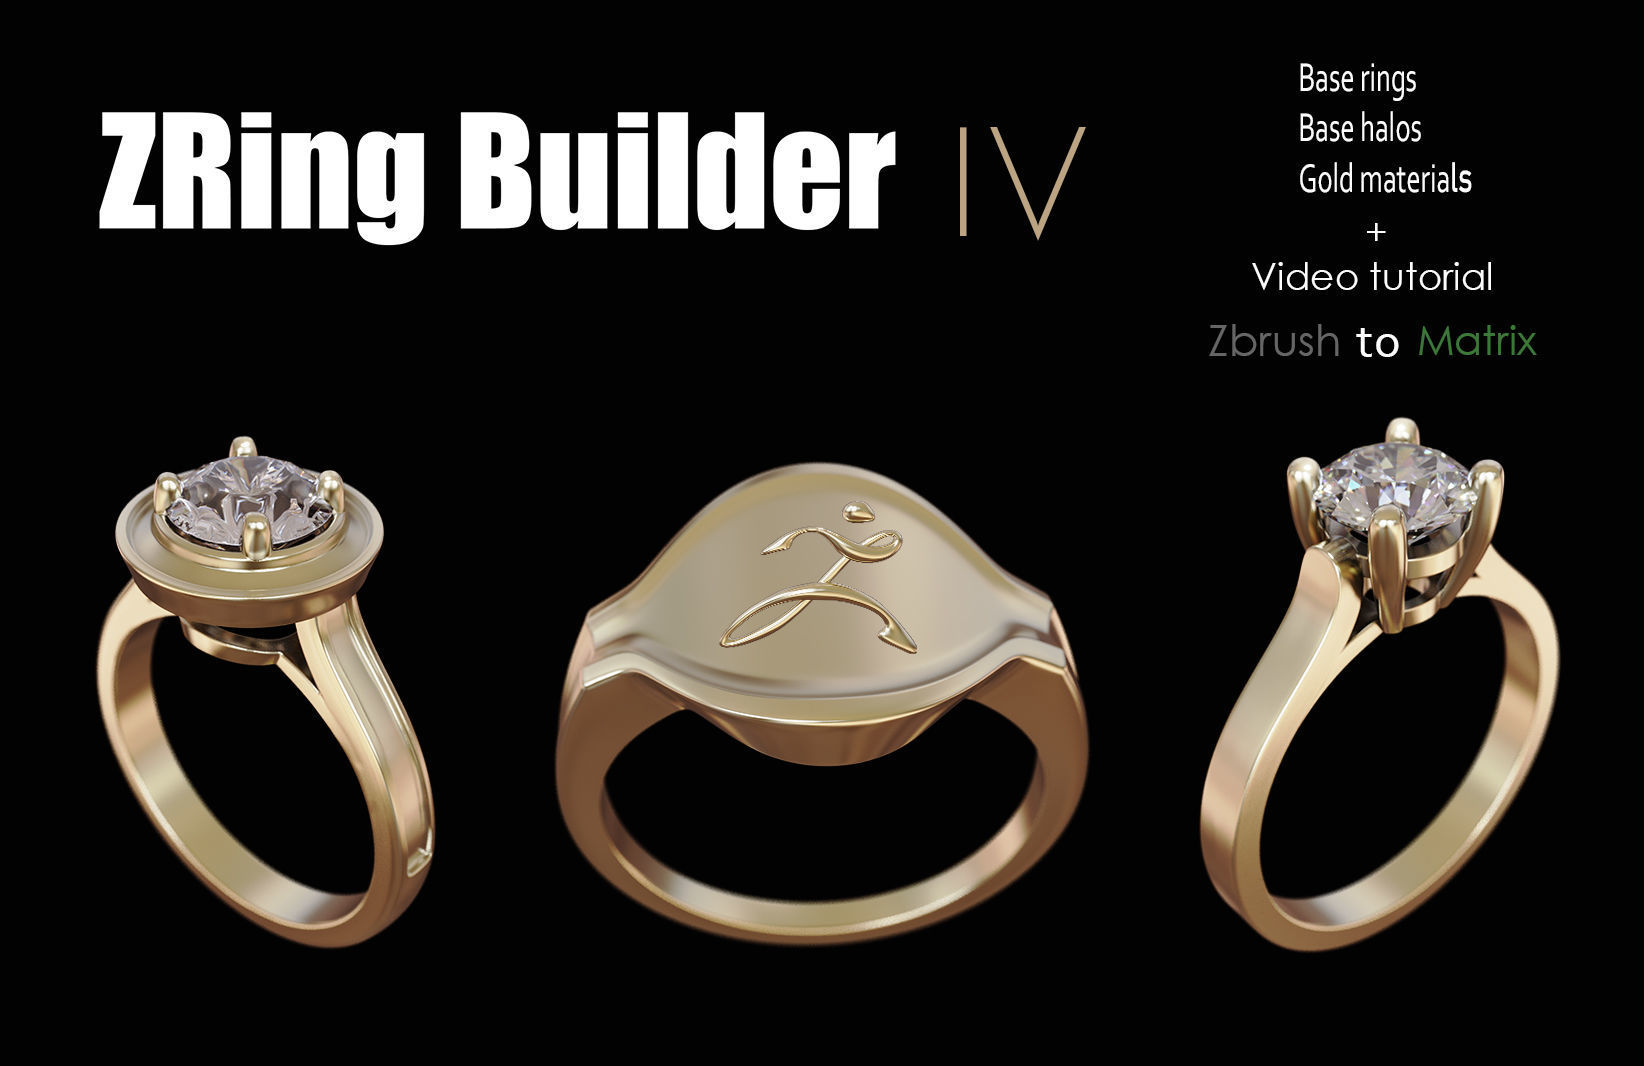 Zbrush jewelry Ring builder 4